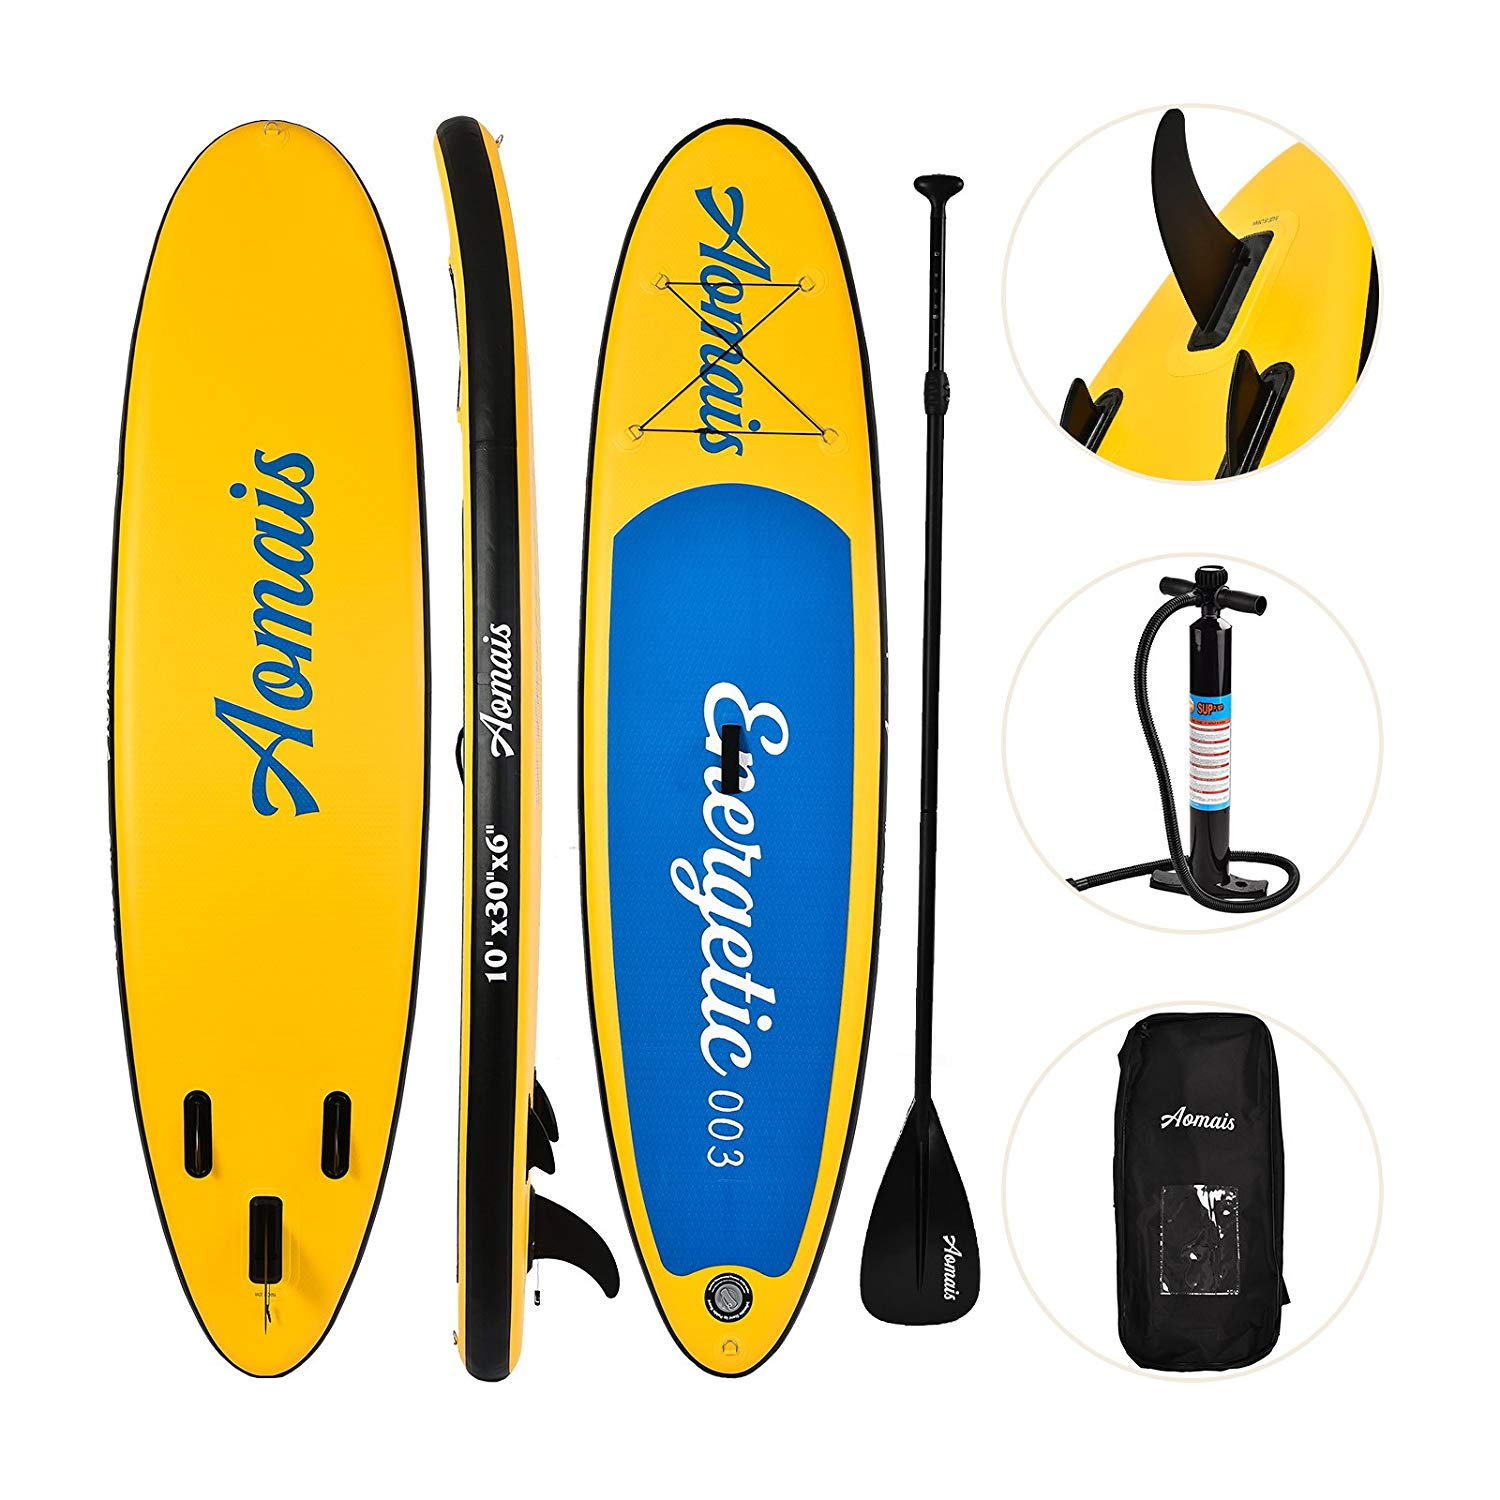 uEnjoy Inflatable Stand Up Paddle Board (6 Inches Thick) Non-Slip Deck Adjustable Paddle Backpack,Pump,Repairing kit by Uenjoy